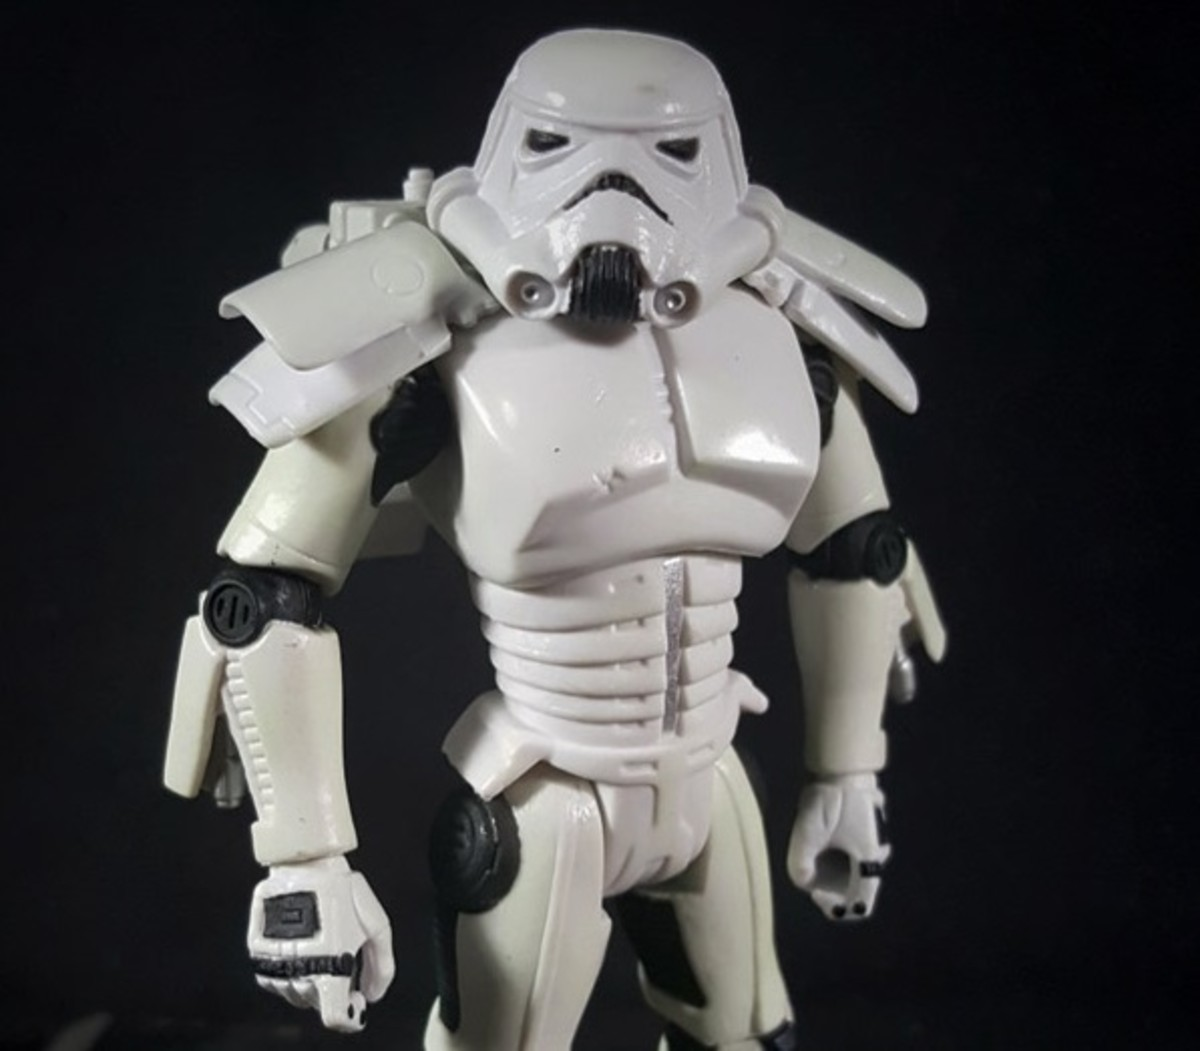 Heavy spacetrooper armor